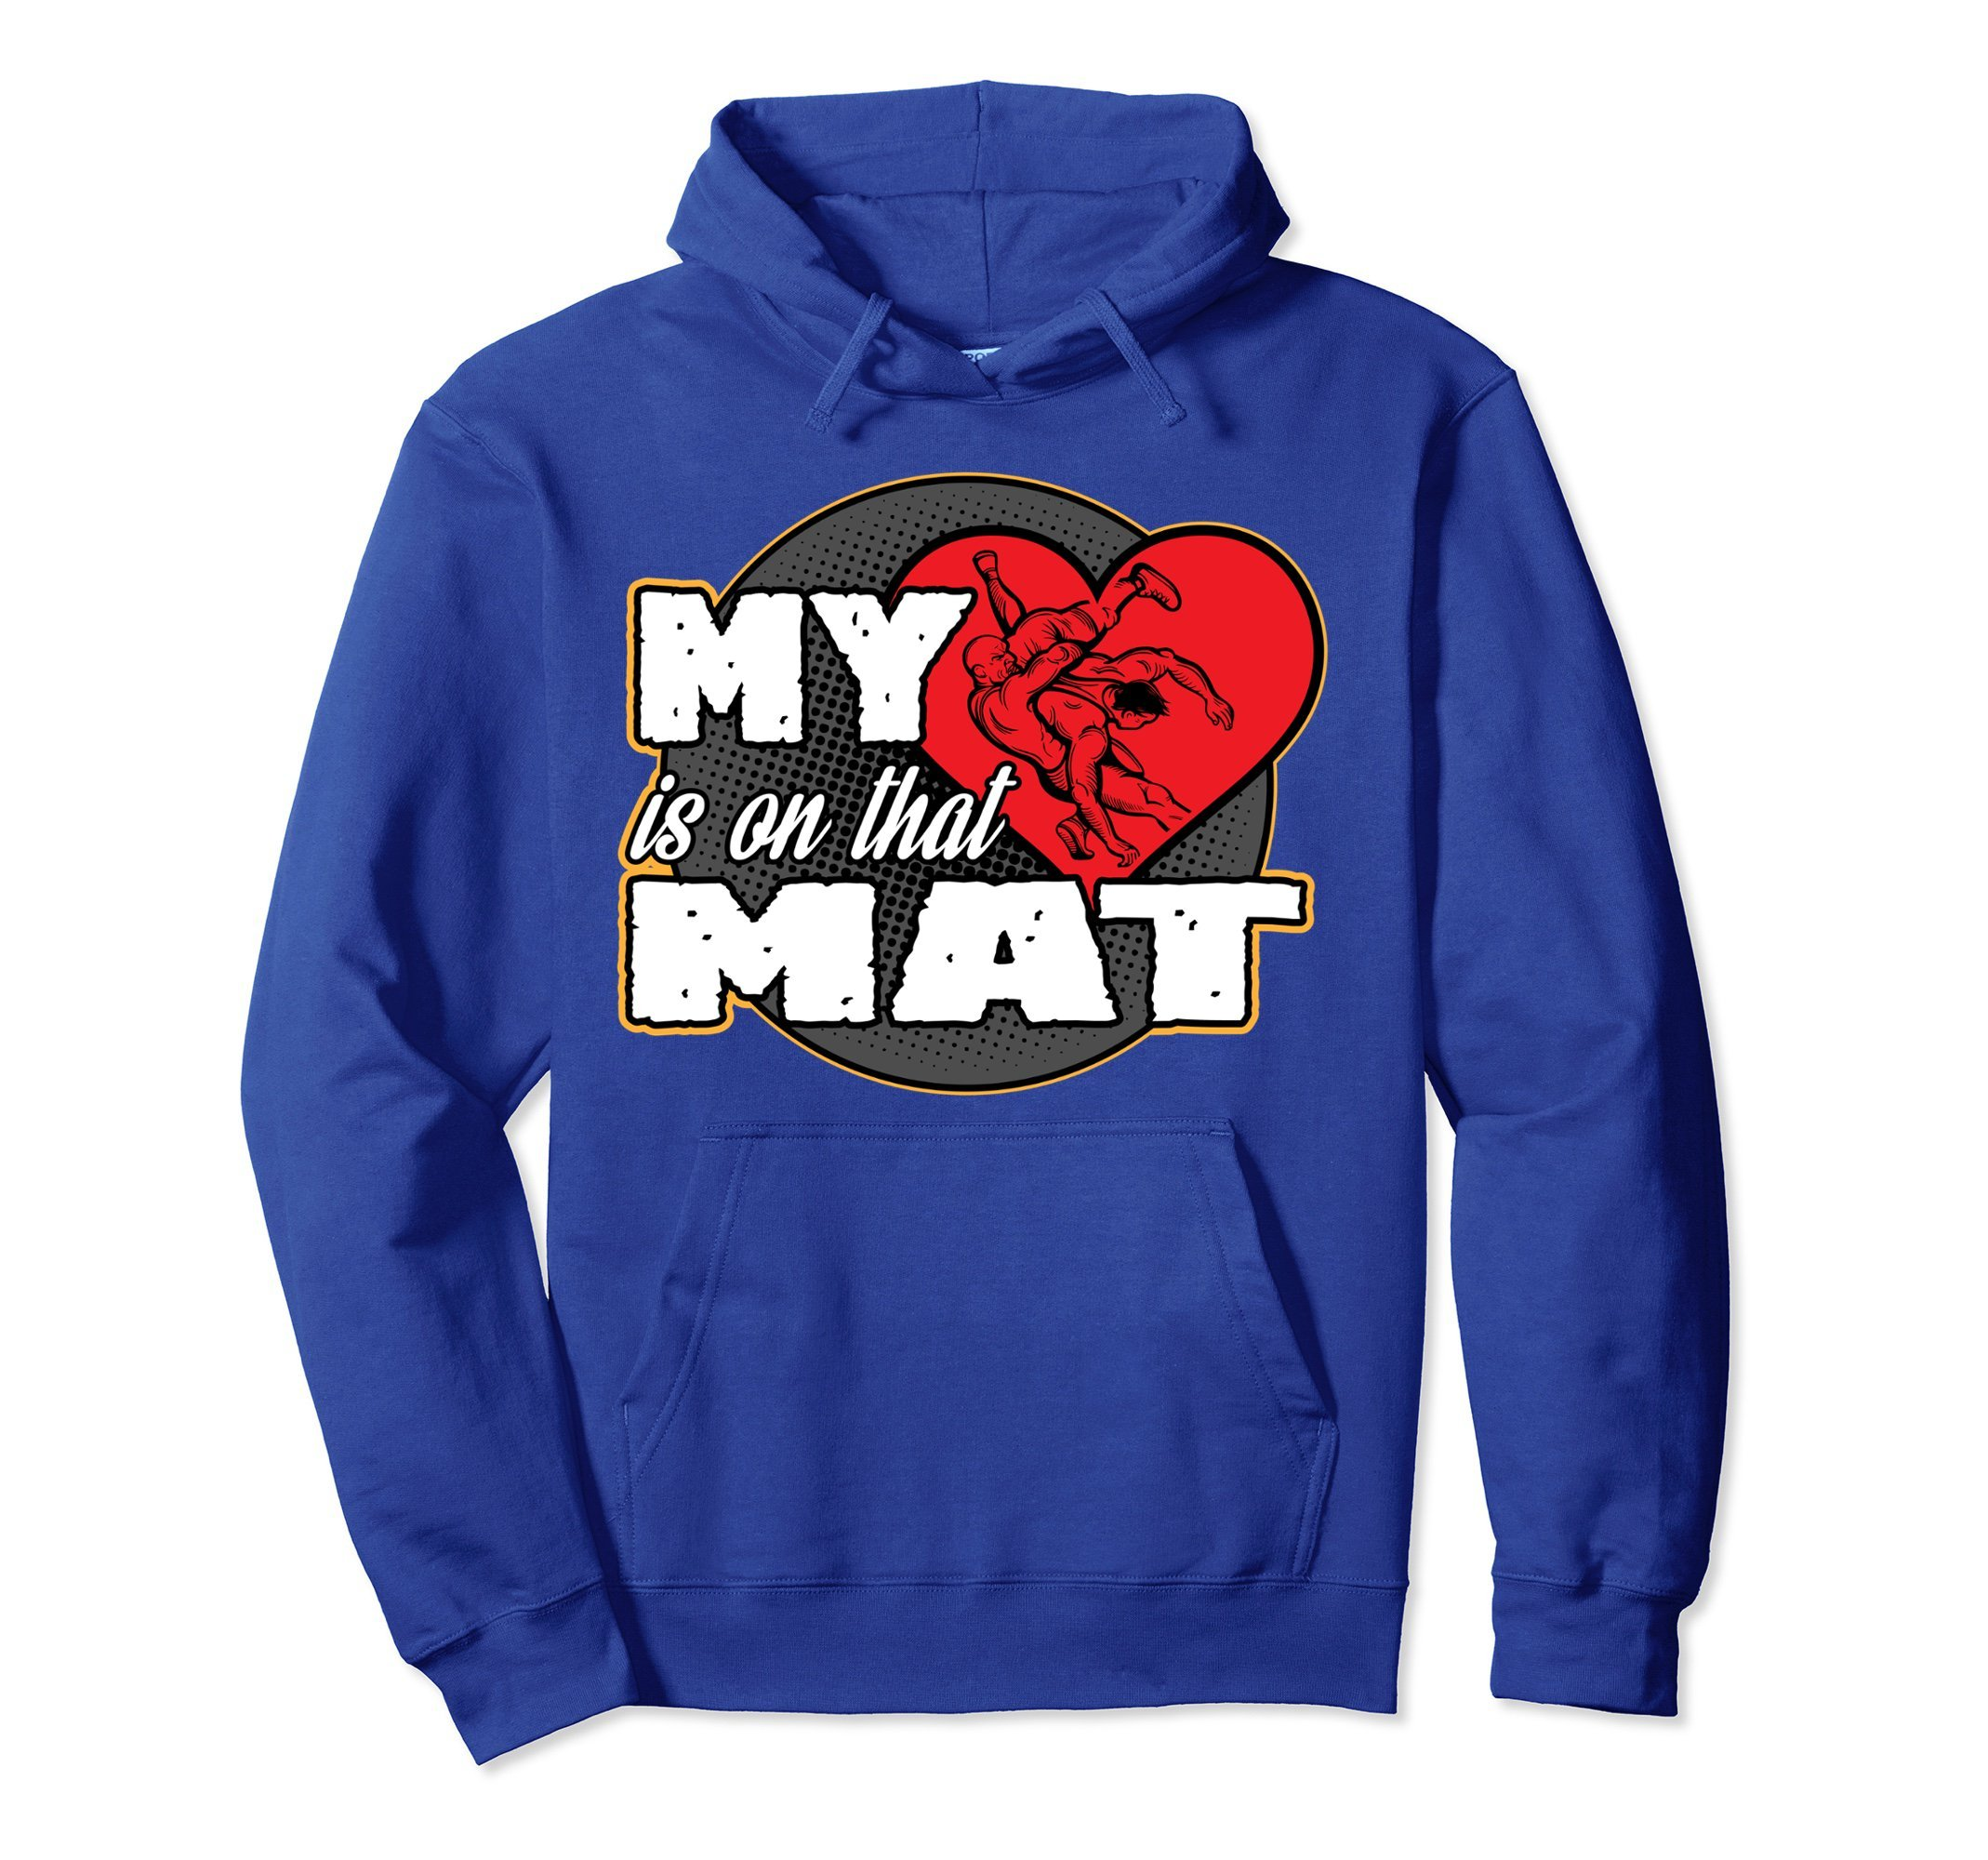 Unisex Wrestling Hoodie - My Heart is On That Mat Sweater 2XL Royal Blue by Wrestling Sweatshirt by Crush Retro